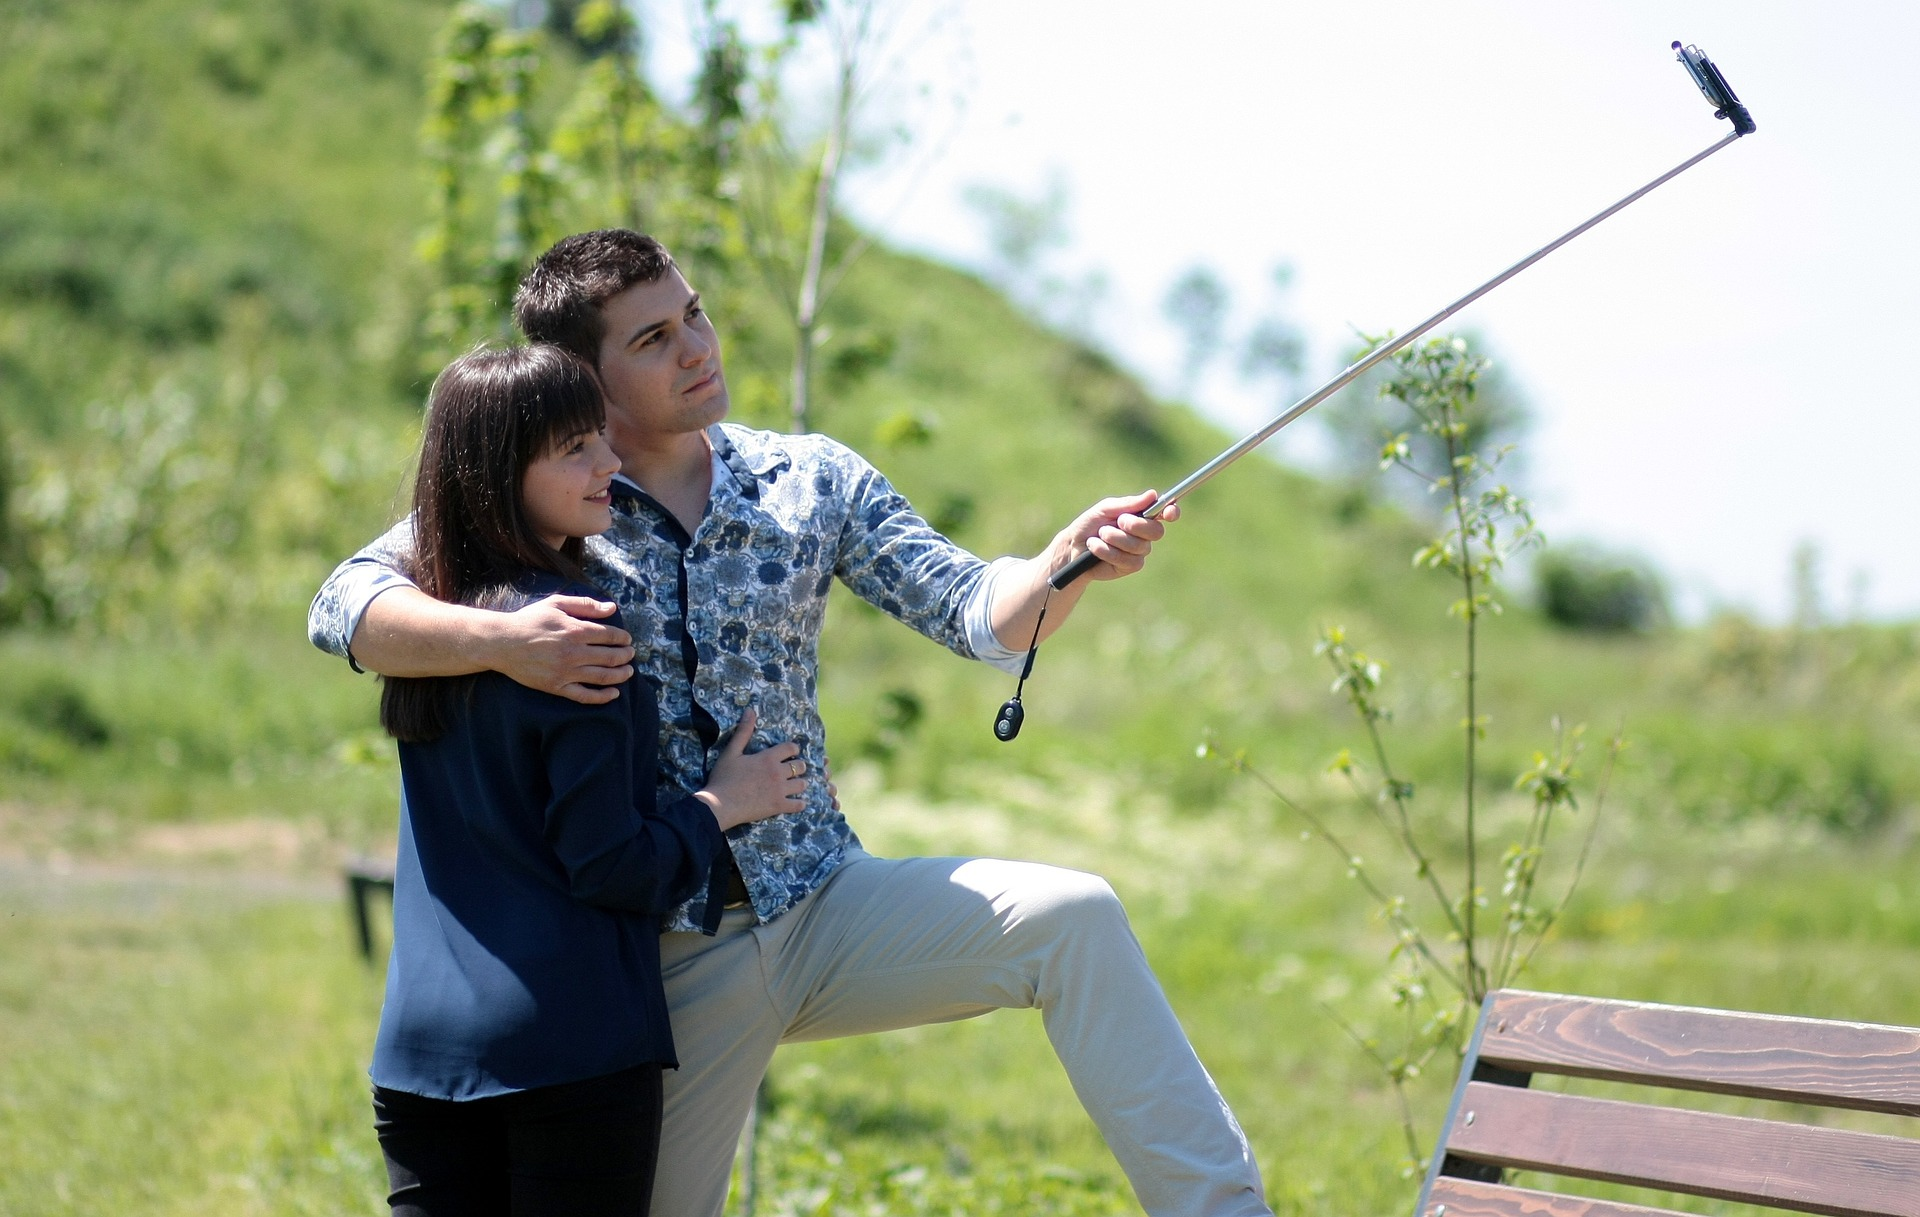 Couple outdoors taking photo with selfie stick